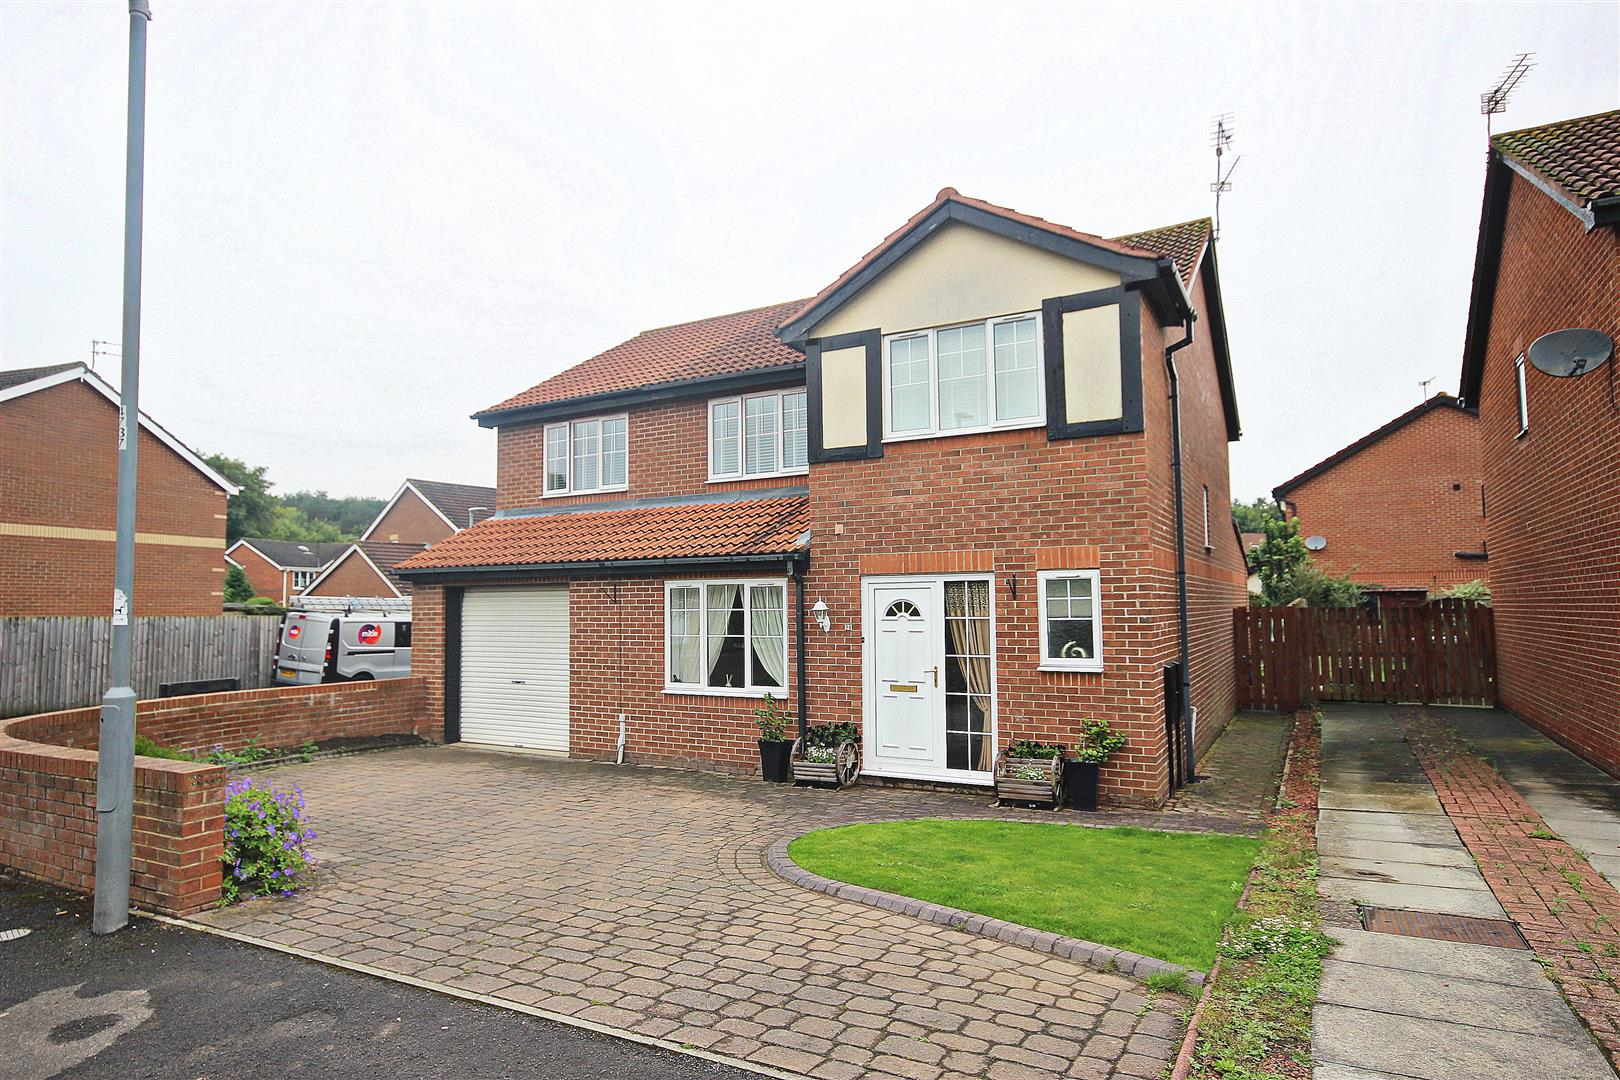 4 Bedrooms Detached House for sale in Relley Garth, Langley Moor, Durham